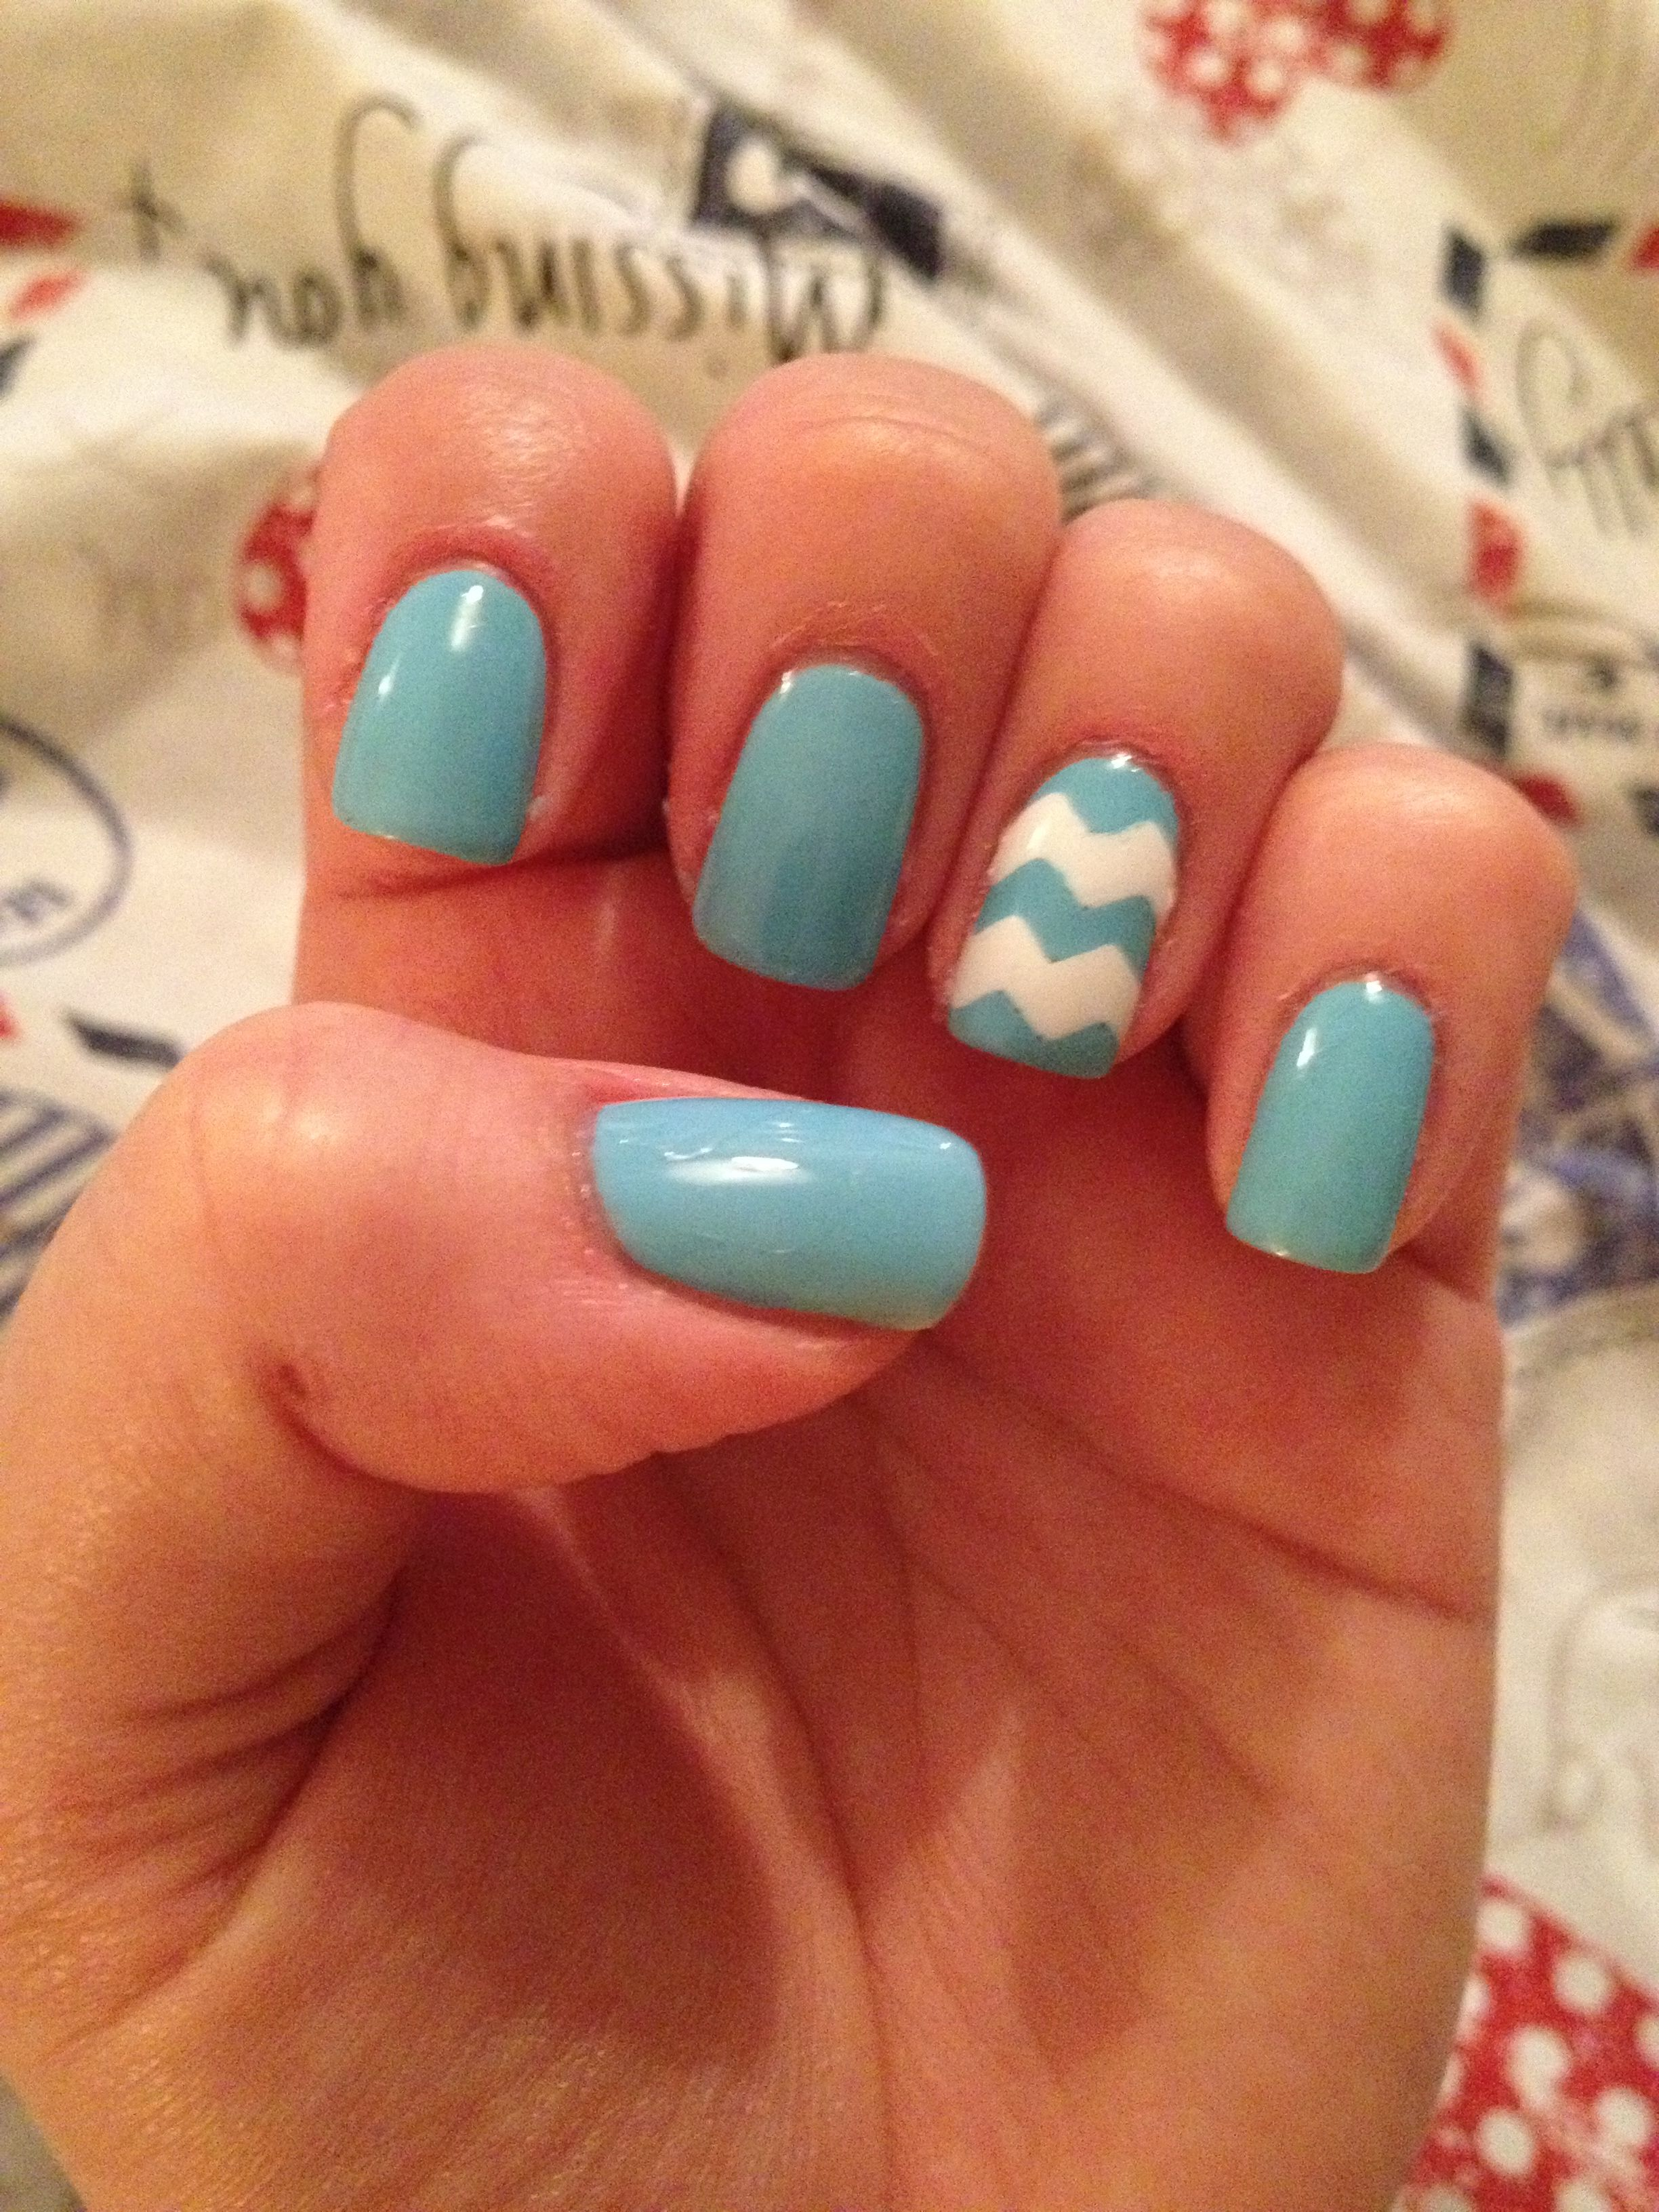 Rimmel too cool to tango and chevron!! Beaut summer colour!!